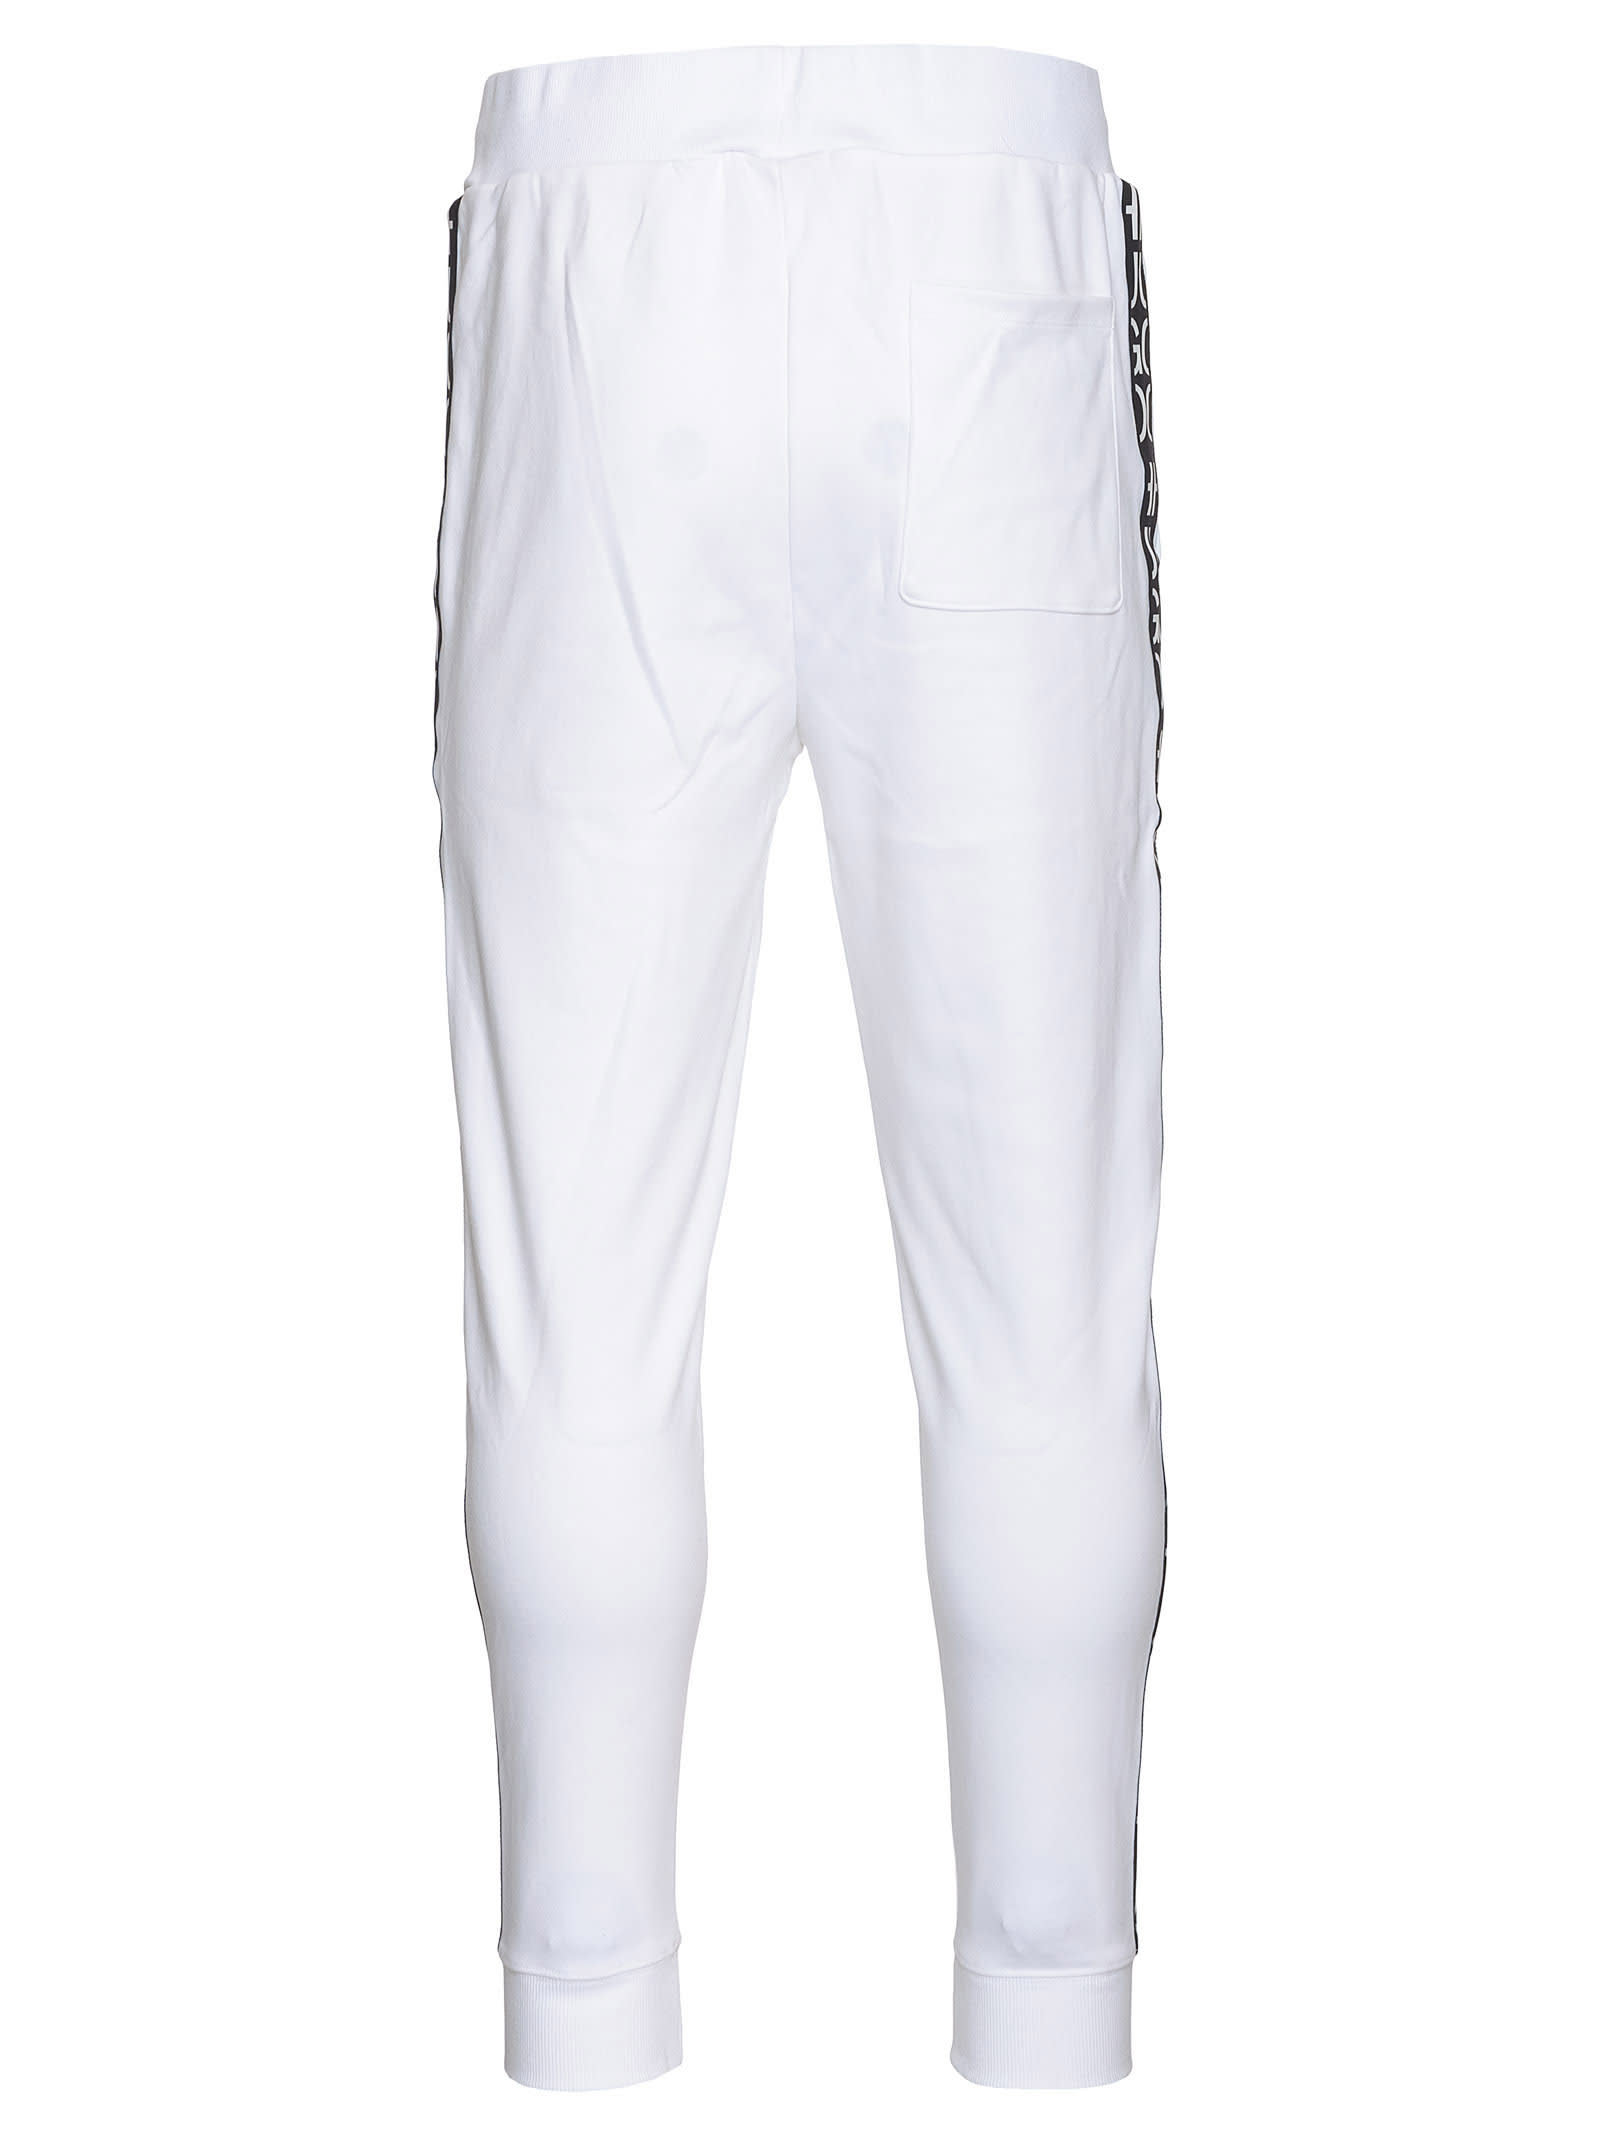 hugo boss trousers size guide